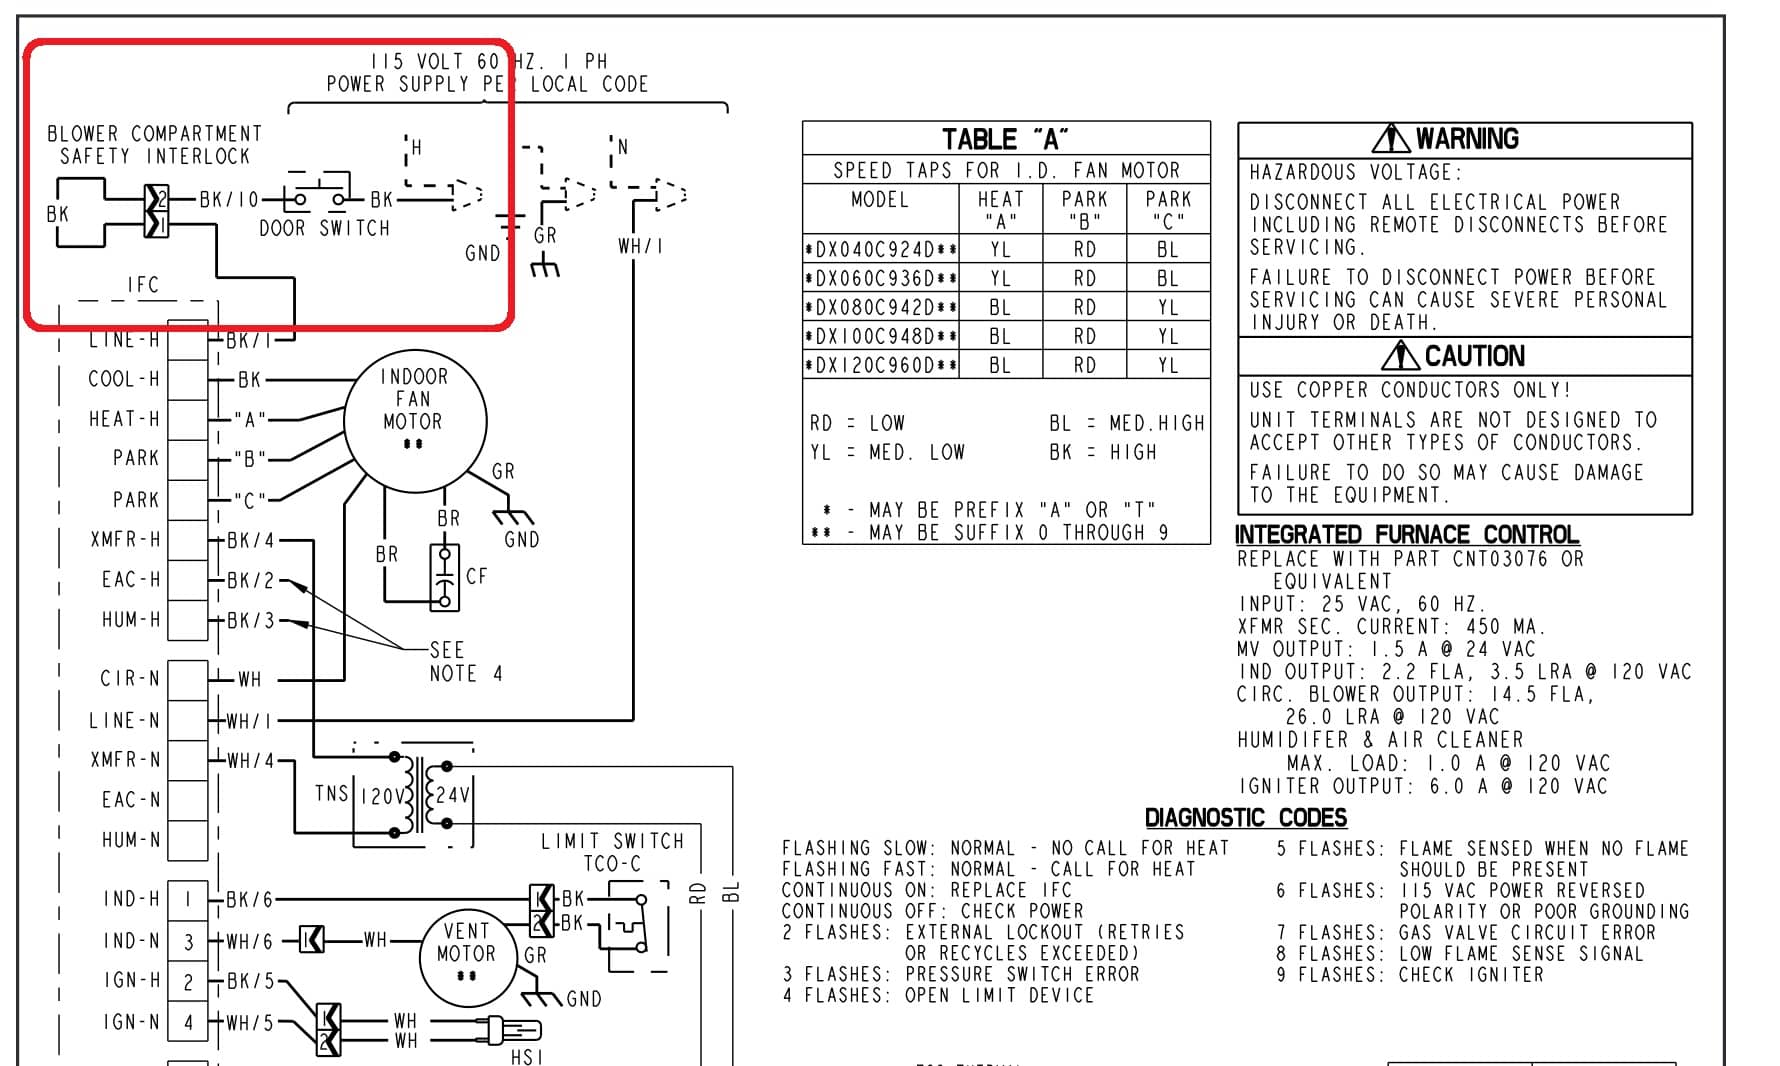 wiring diagram for rheem heat pump Images Gallery. blower door safety  interlock switch installation wiring